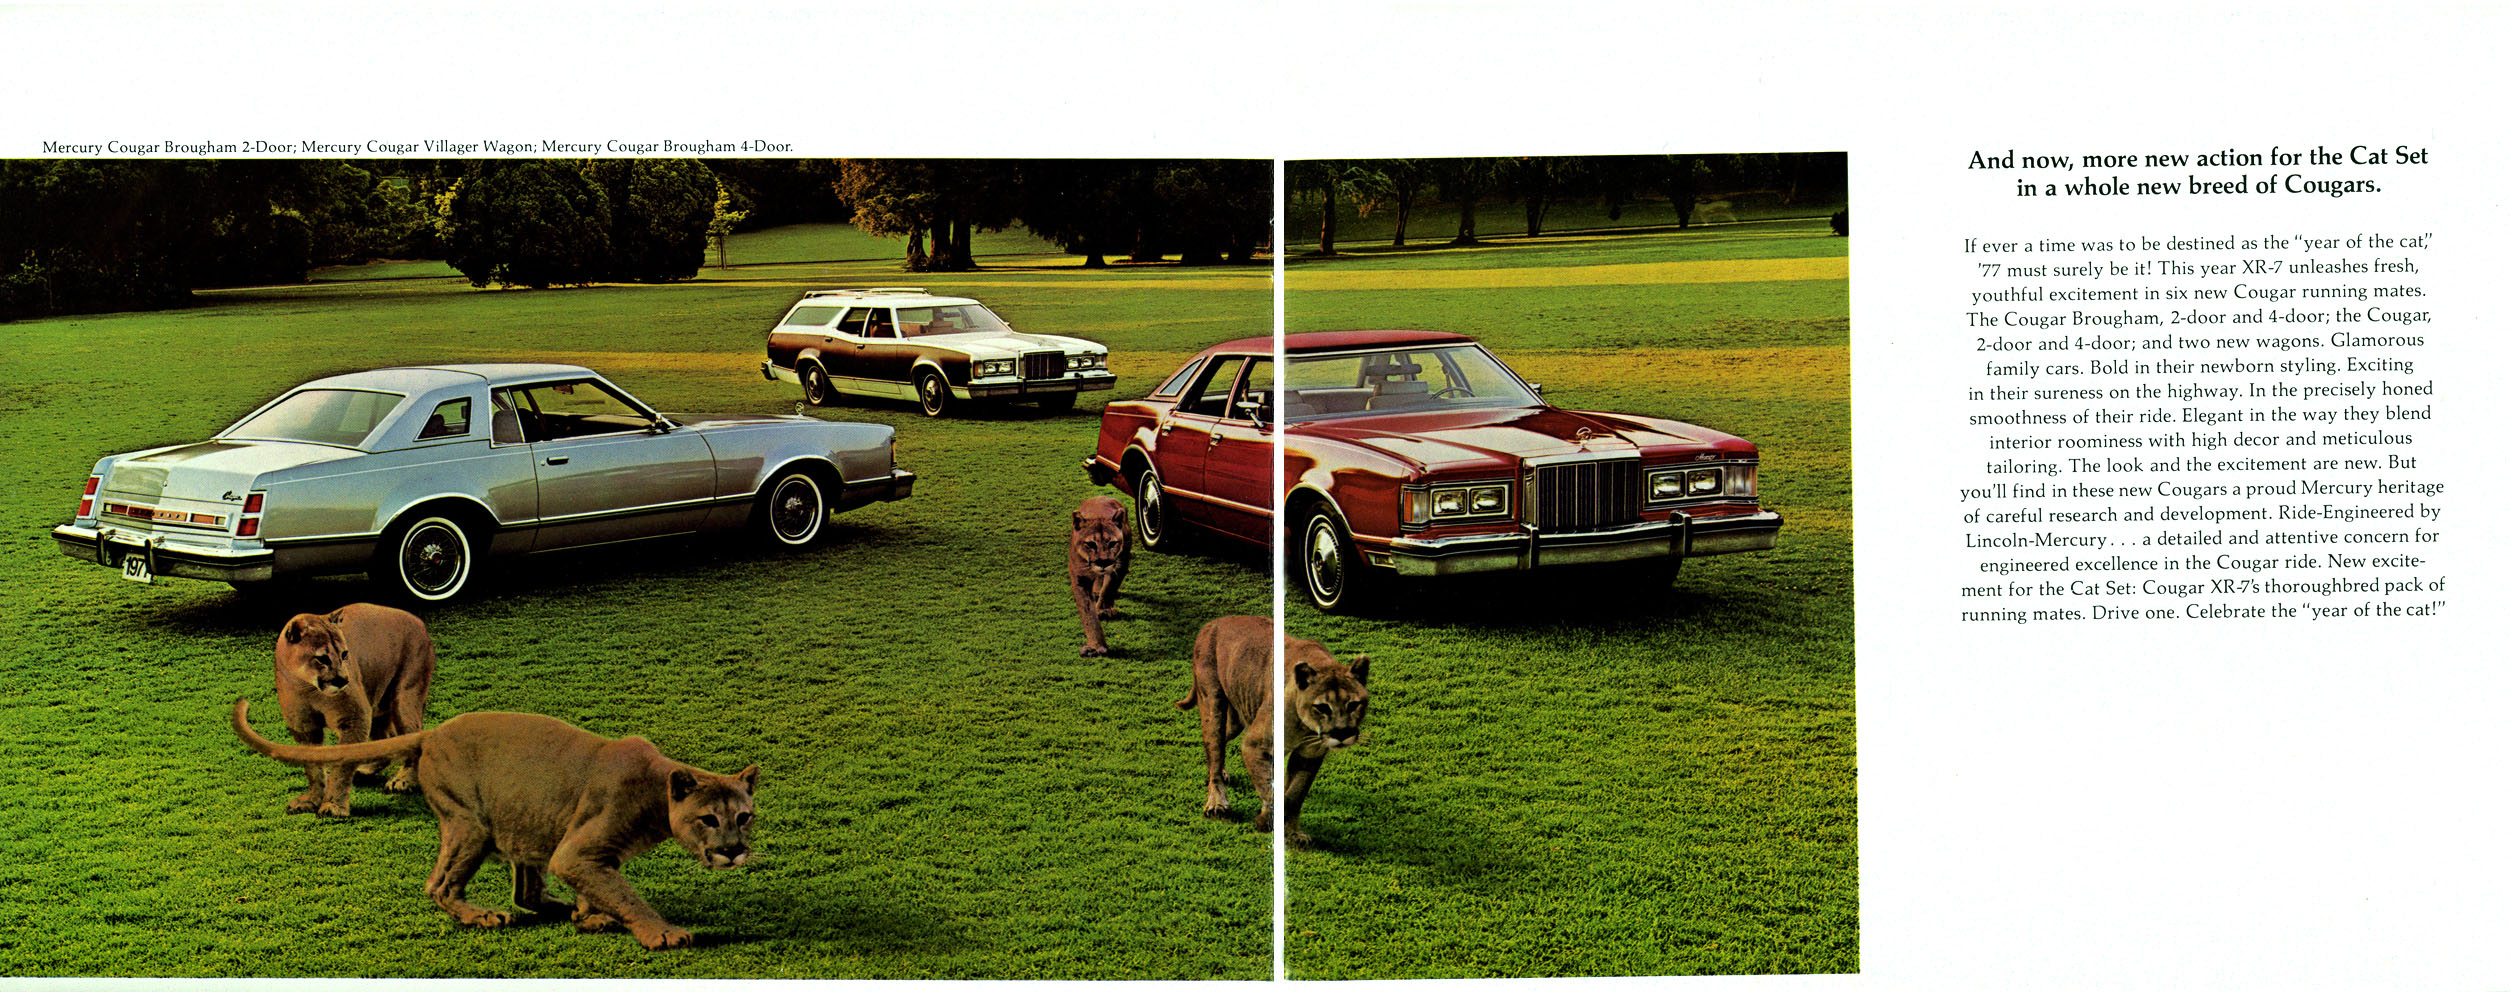 68 20COUGAR 20390 20PICTS further 5293 1997 Mercury Cougar 5 likewise Mercury Cougar further 83merc furthermore 1473666. on mercury cougar